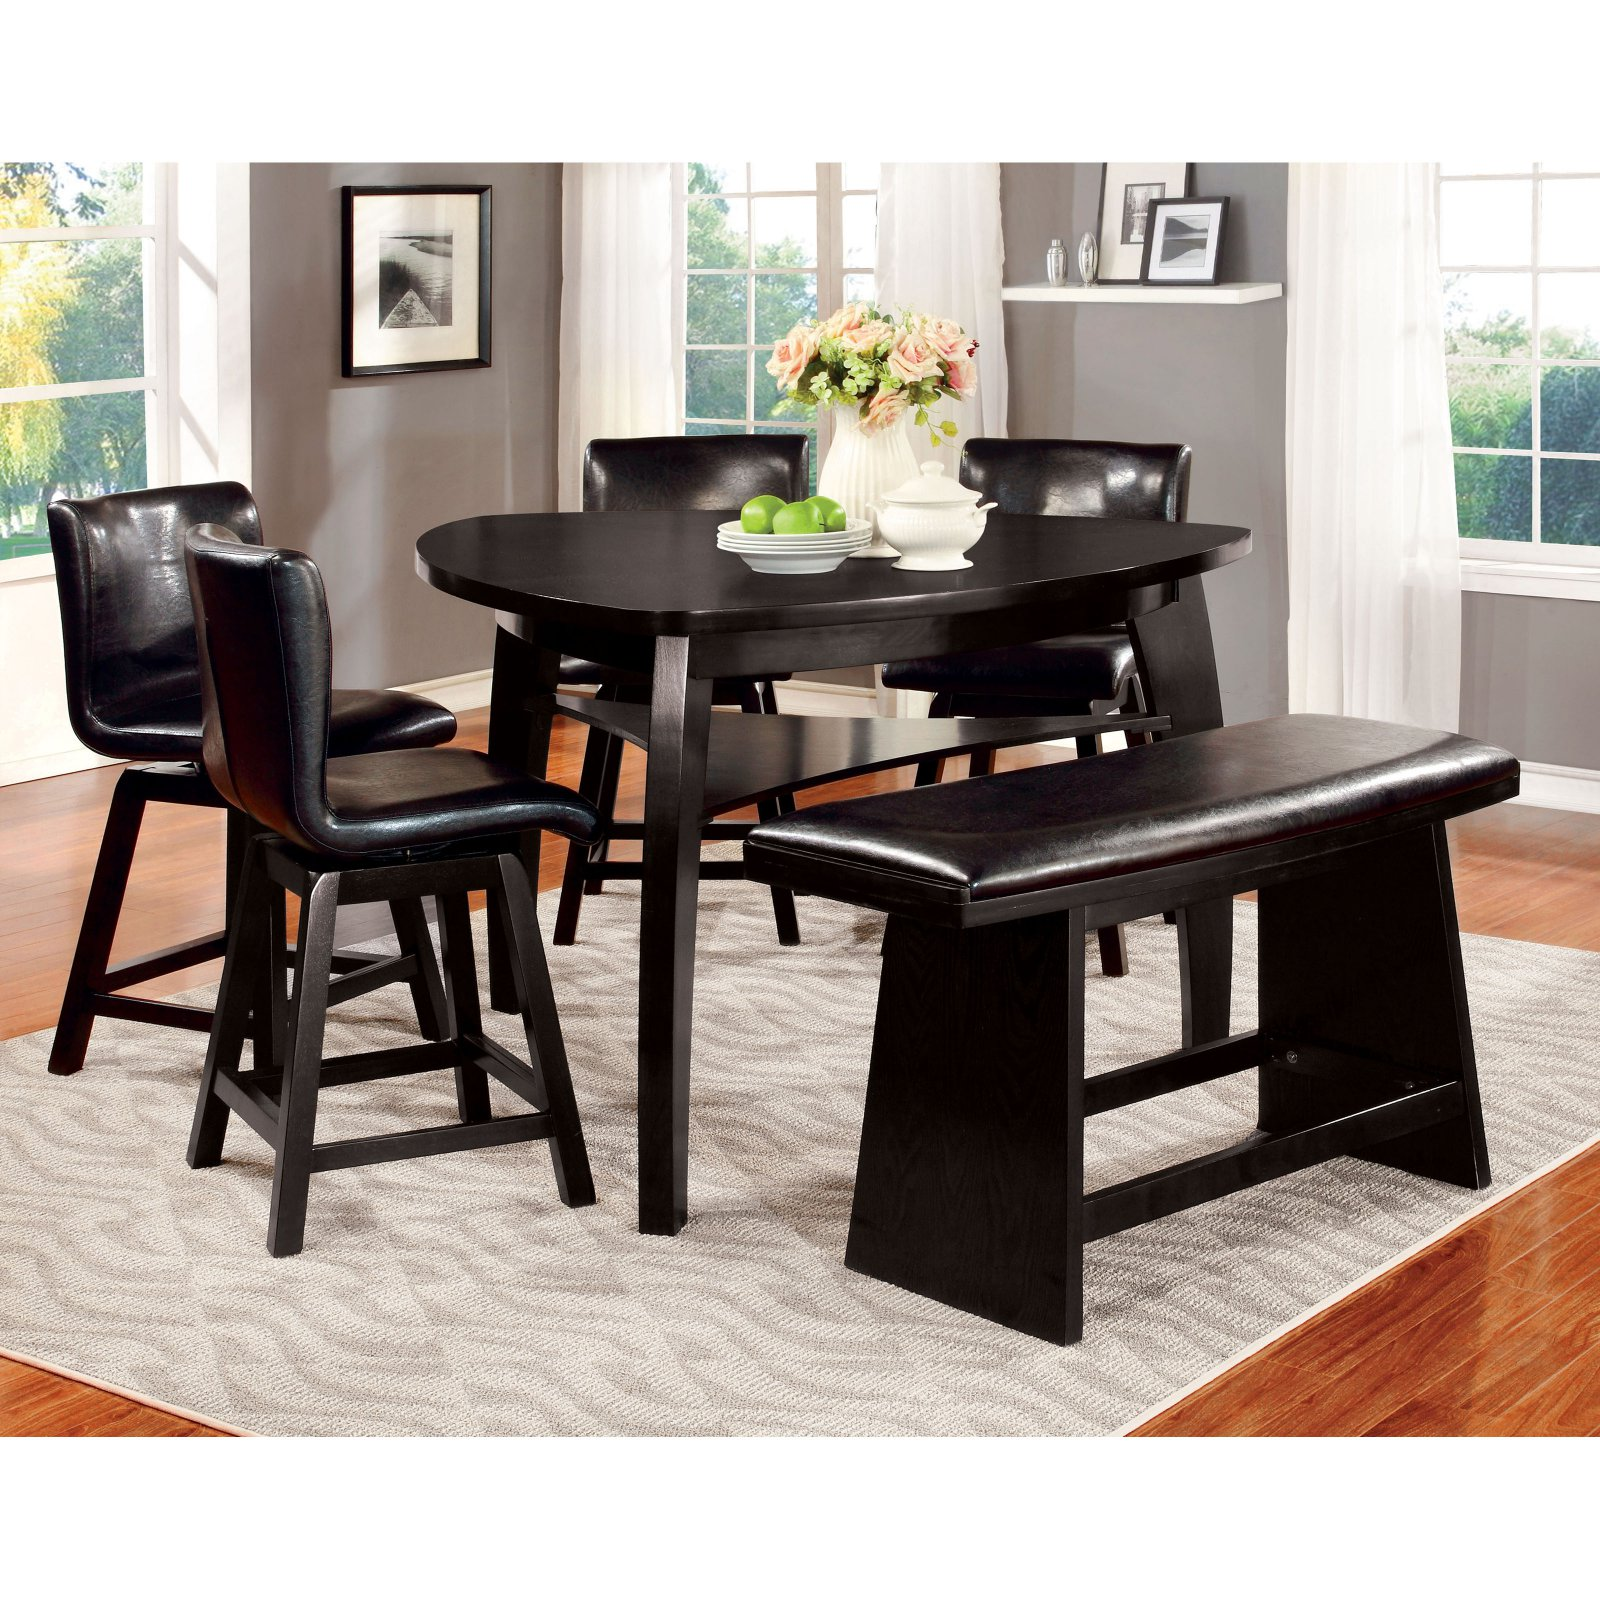 Furniture of America Rathbun Modern 6 Piece Counter Height Dining Table Set...